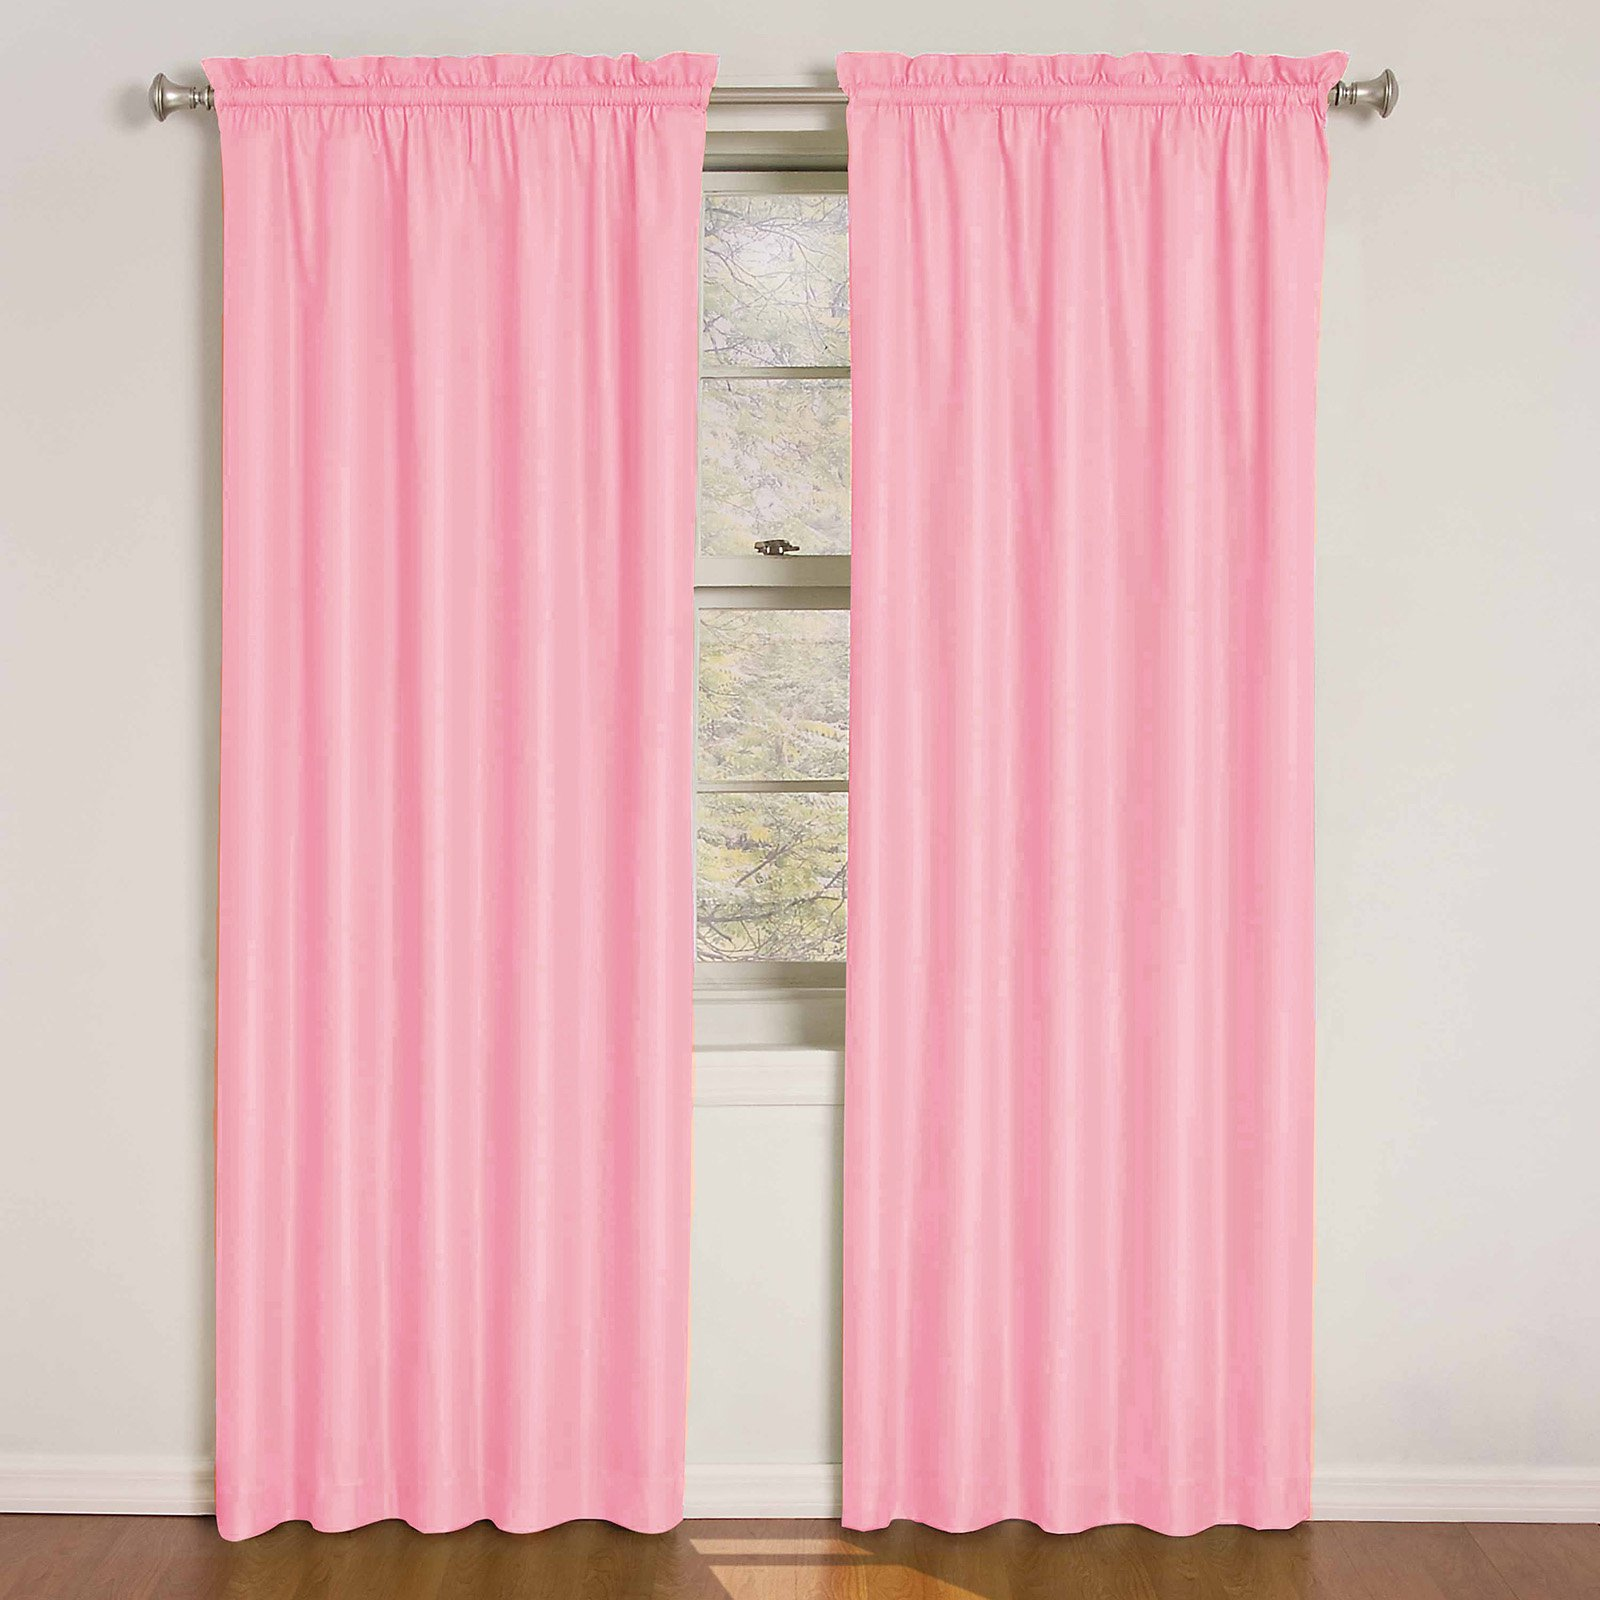 36 Inch Room Darkening Curtains Eclipse Phoenix Blackout Window Curtain Panel Pair